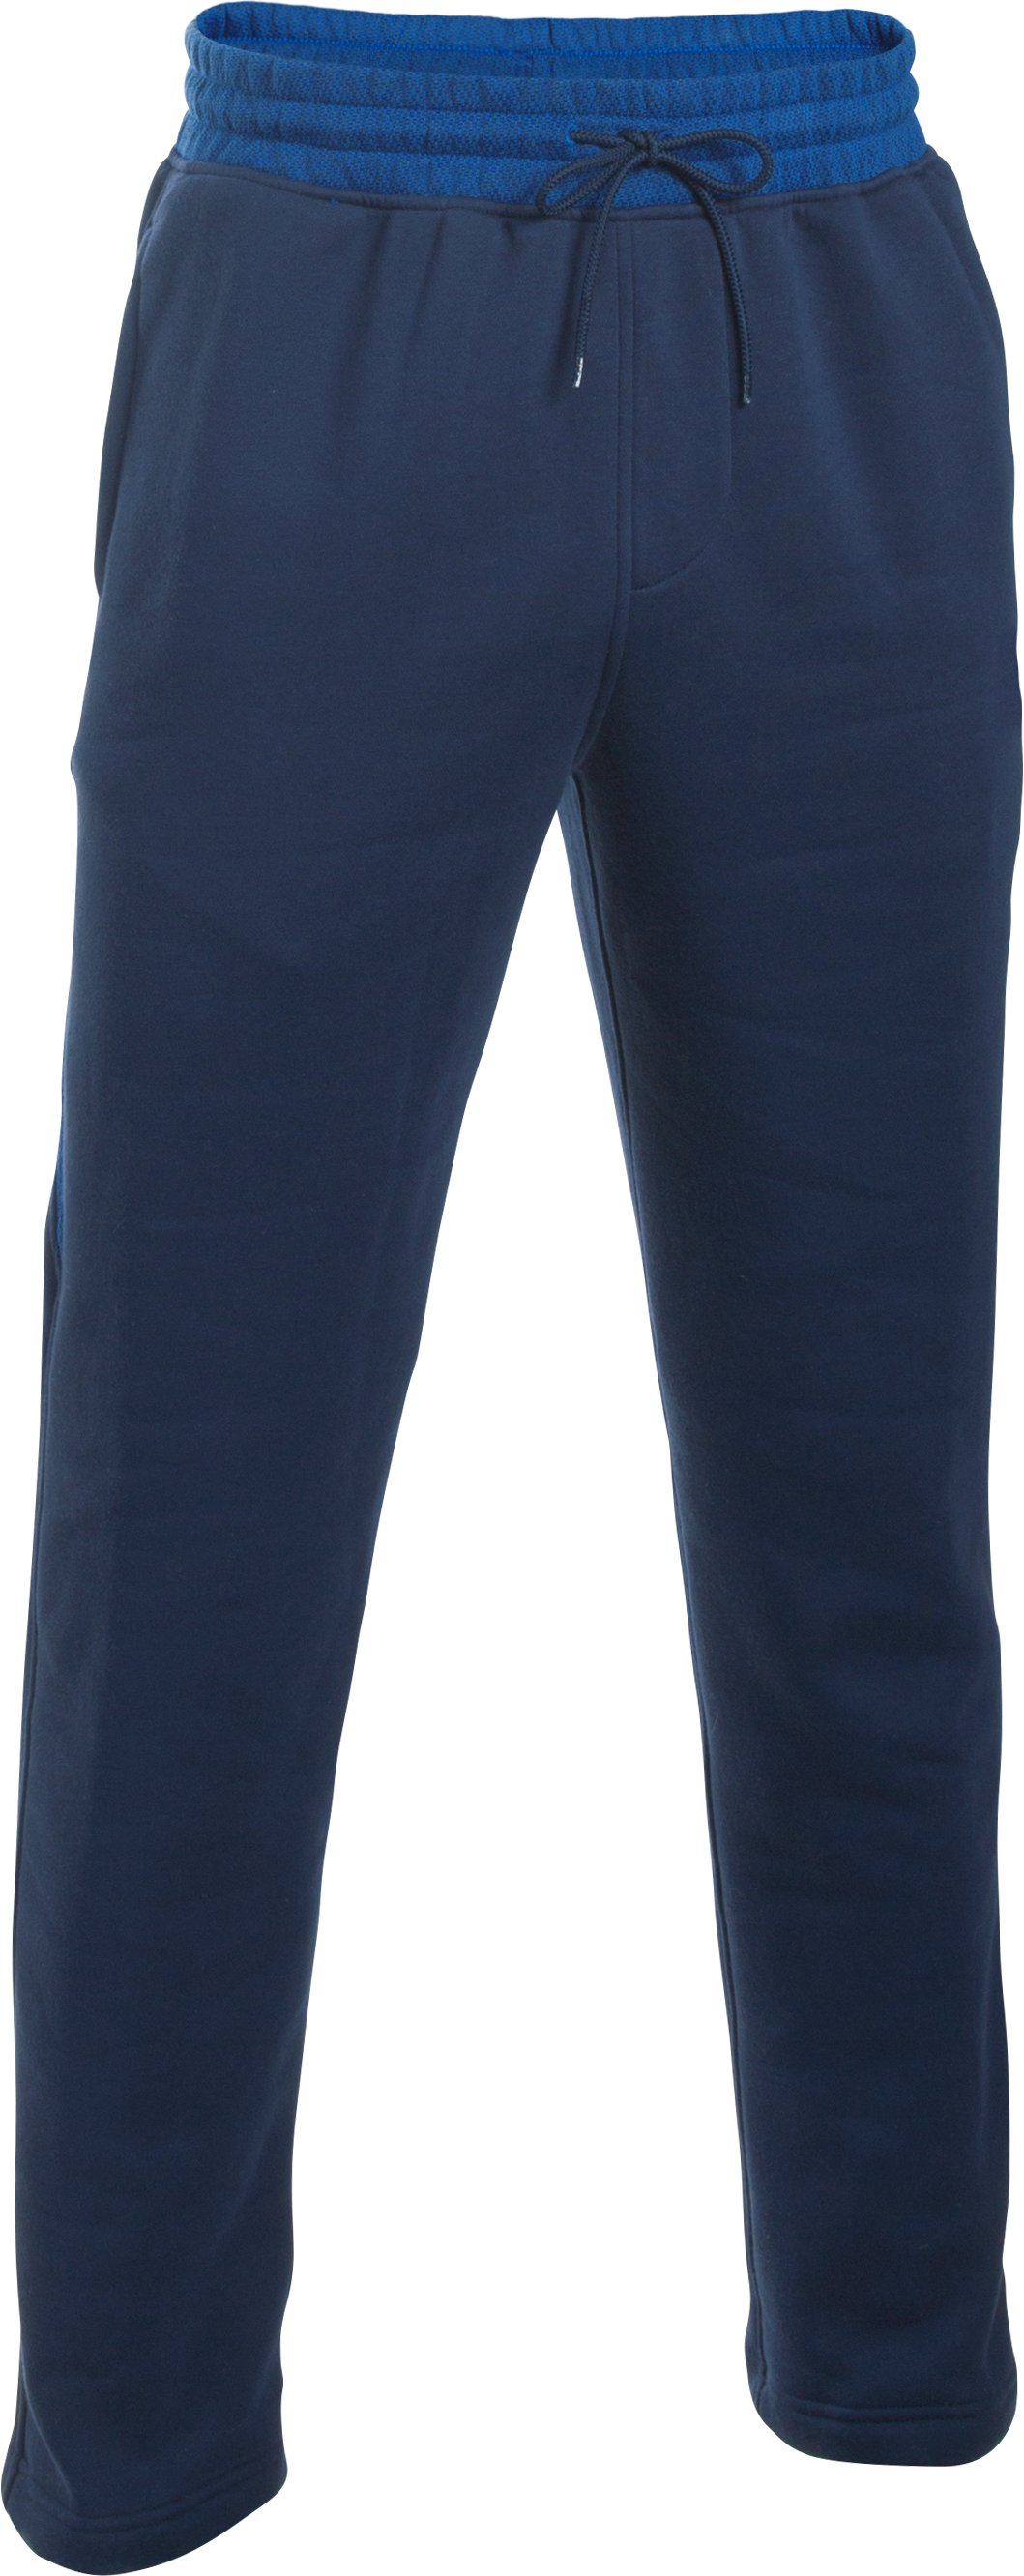 Men's SC30 Essentials Pants, Midnight Navy,